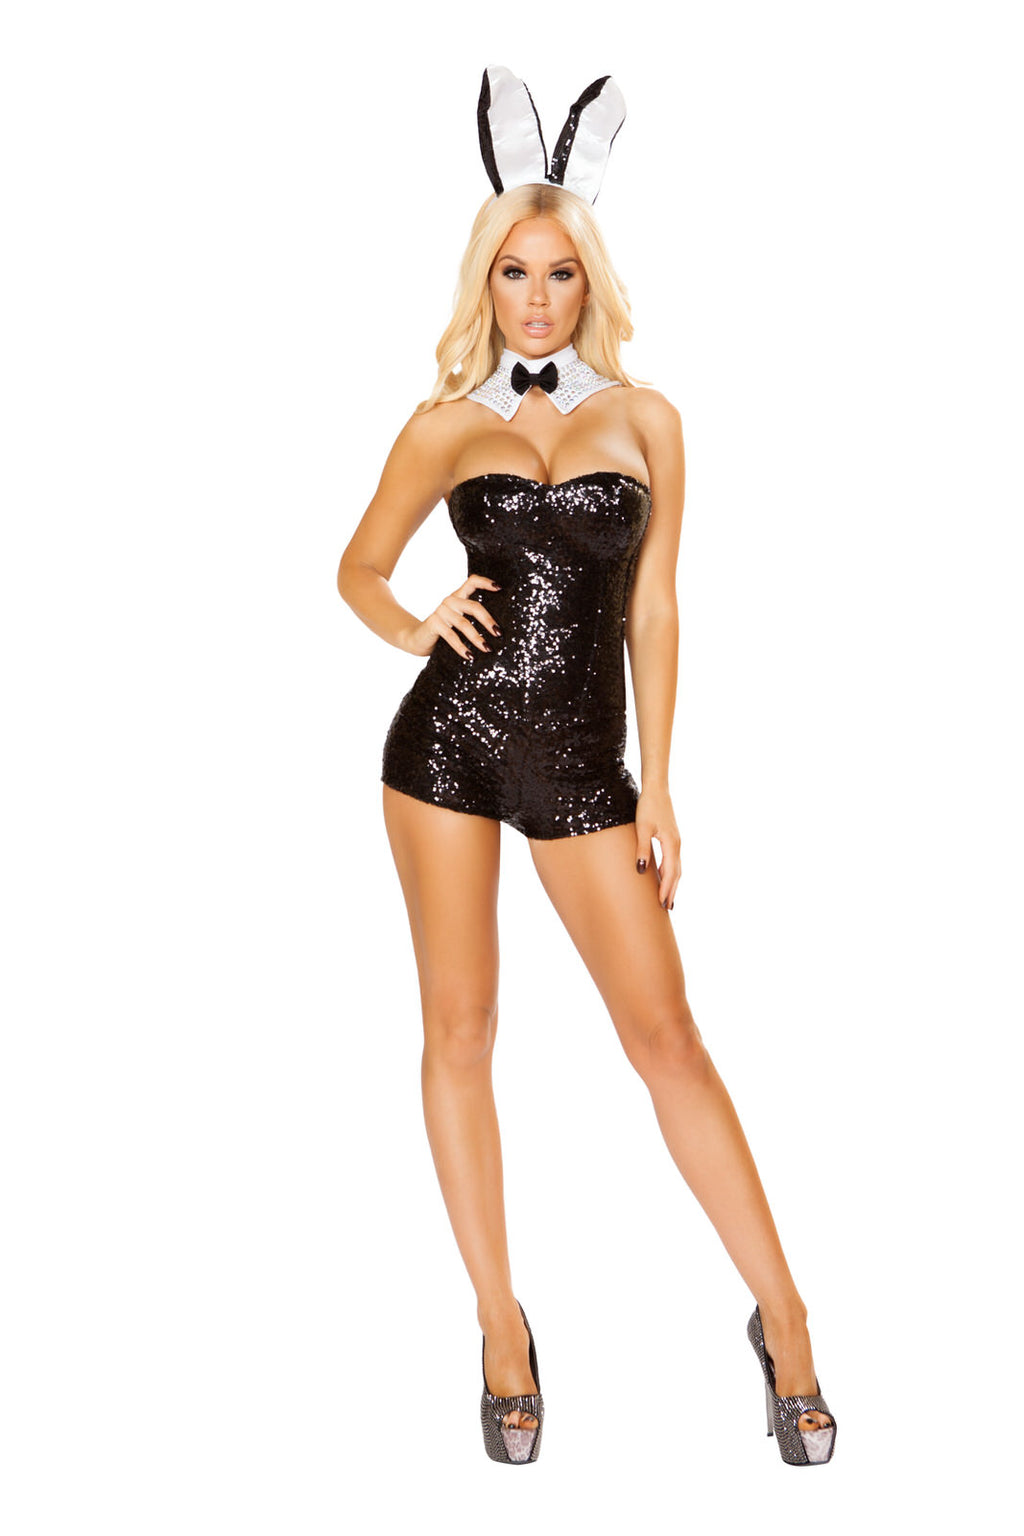 3-PC-Bunny-Model-Black-Sequin-Corset-&-Shorts-w/-Accessories-Party-Costume